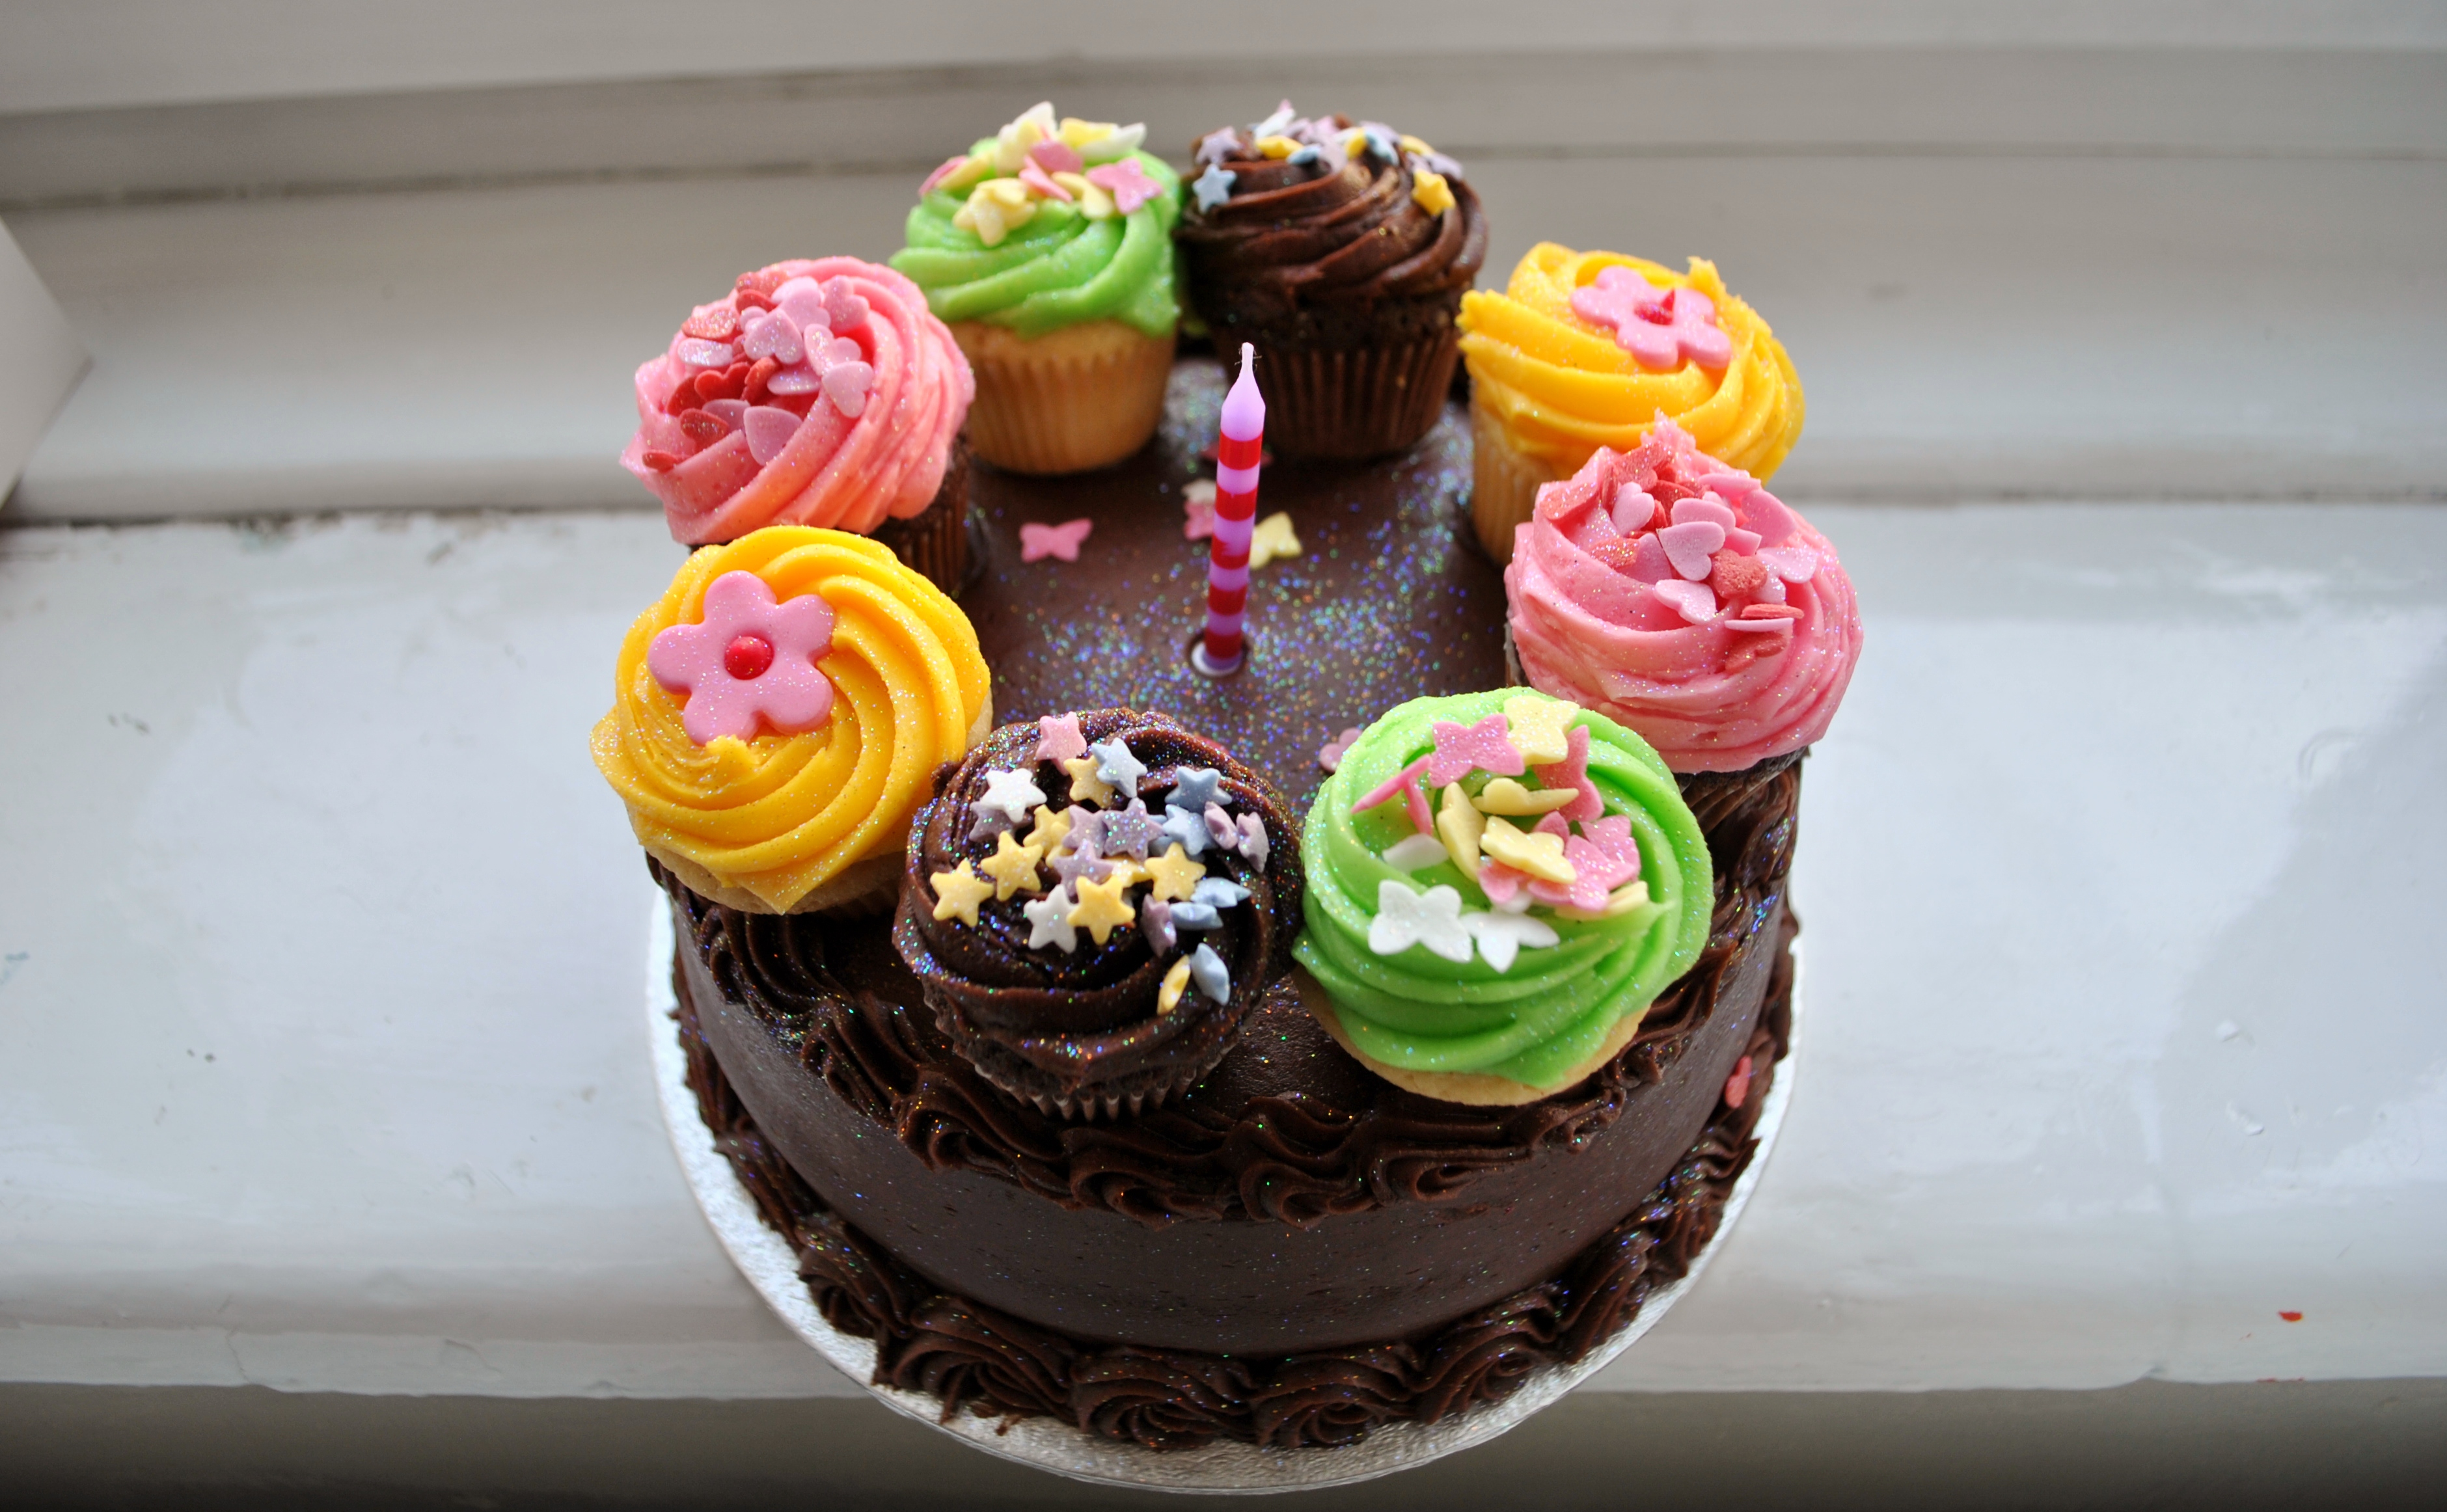 The Best Cake Images : My Birthday cake Alicia in Londonland